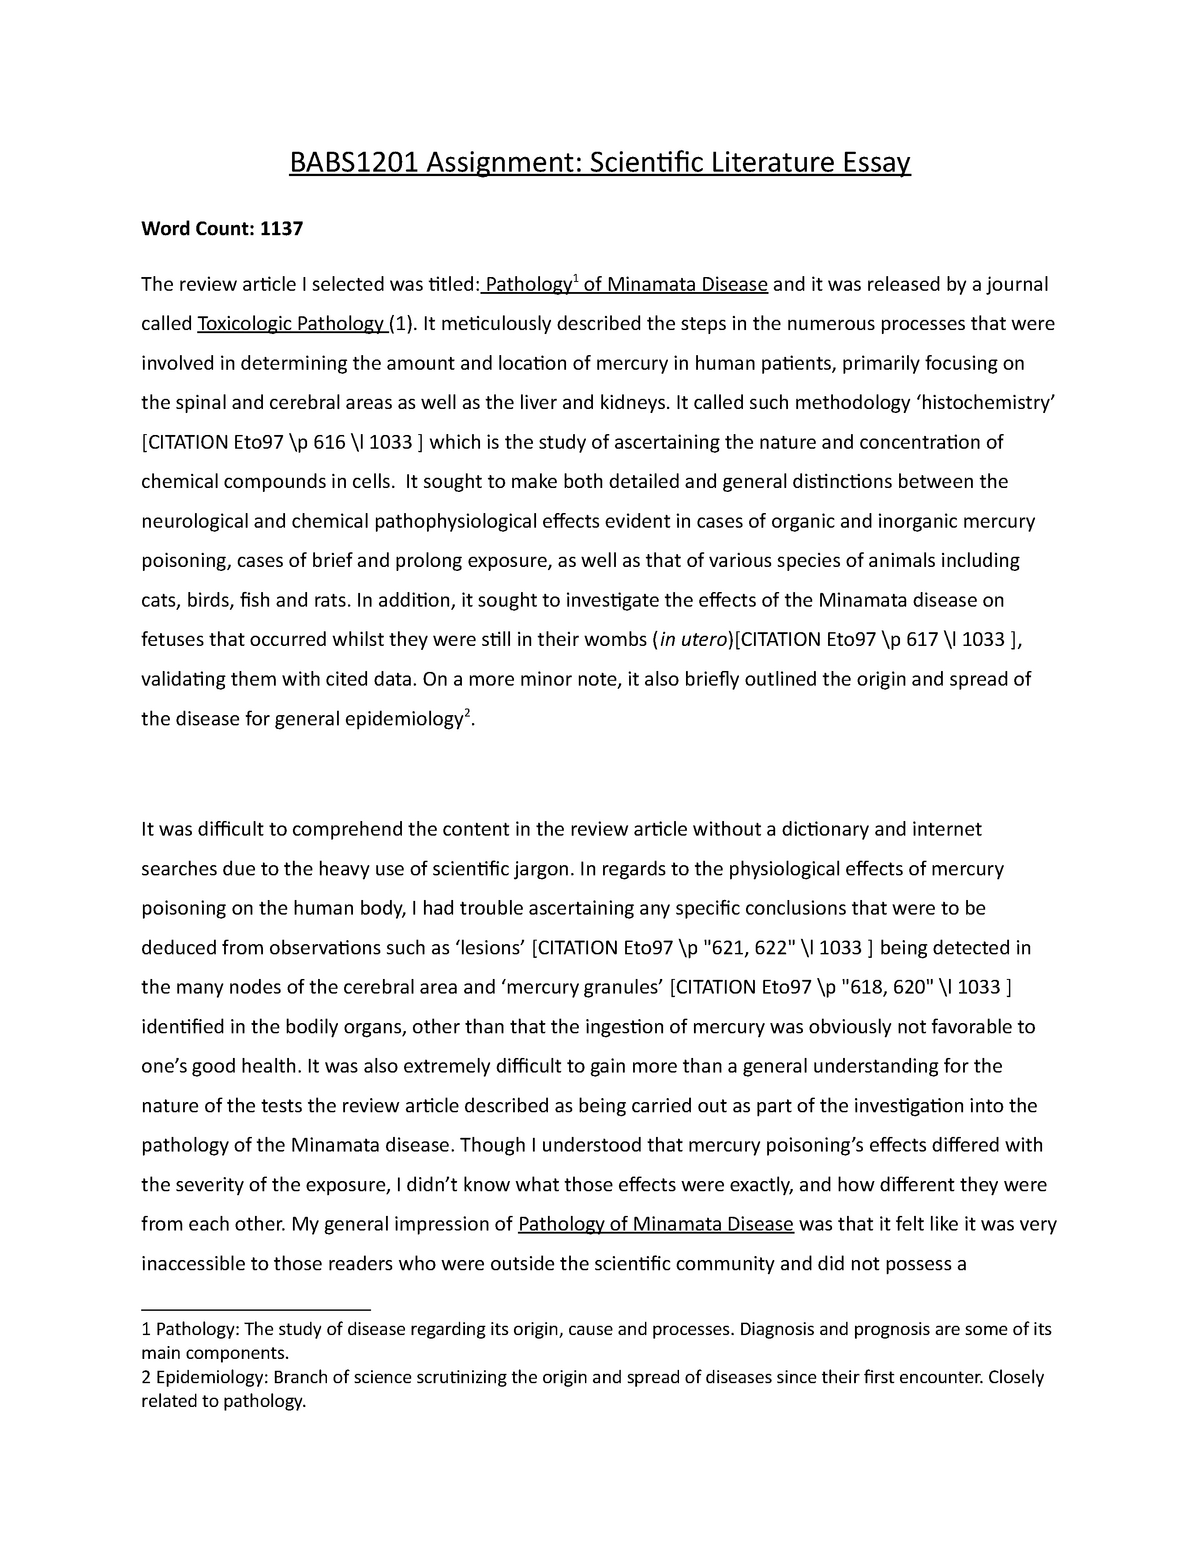 Examples Of Essays For High School  Barack Obama Essay Paper also Proposal Argument Essay Examples Essay On Primary And Secondary Scientific Literature  Grade  Importance Of English Essay